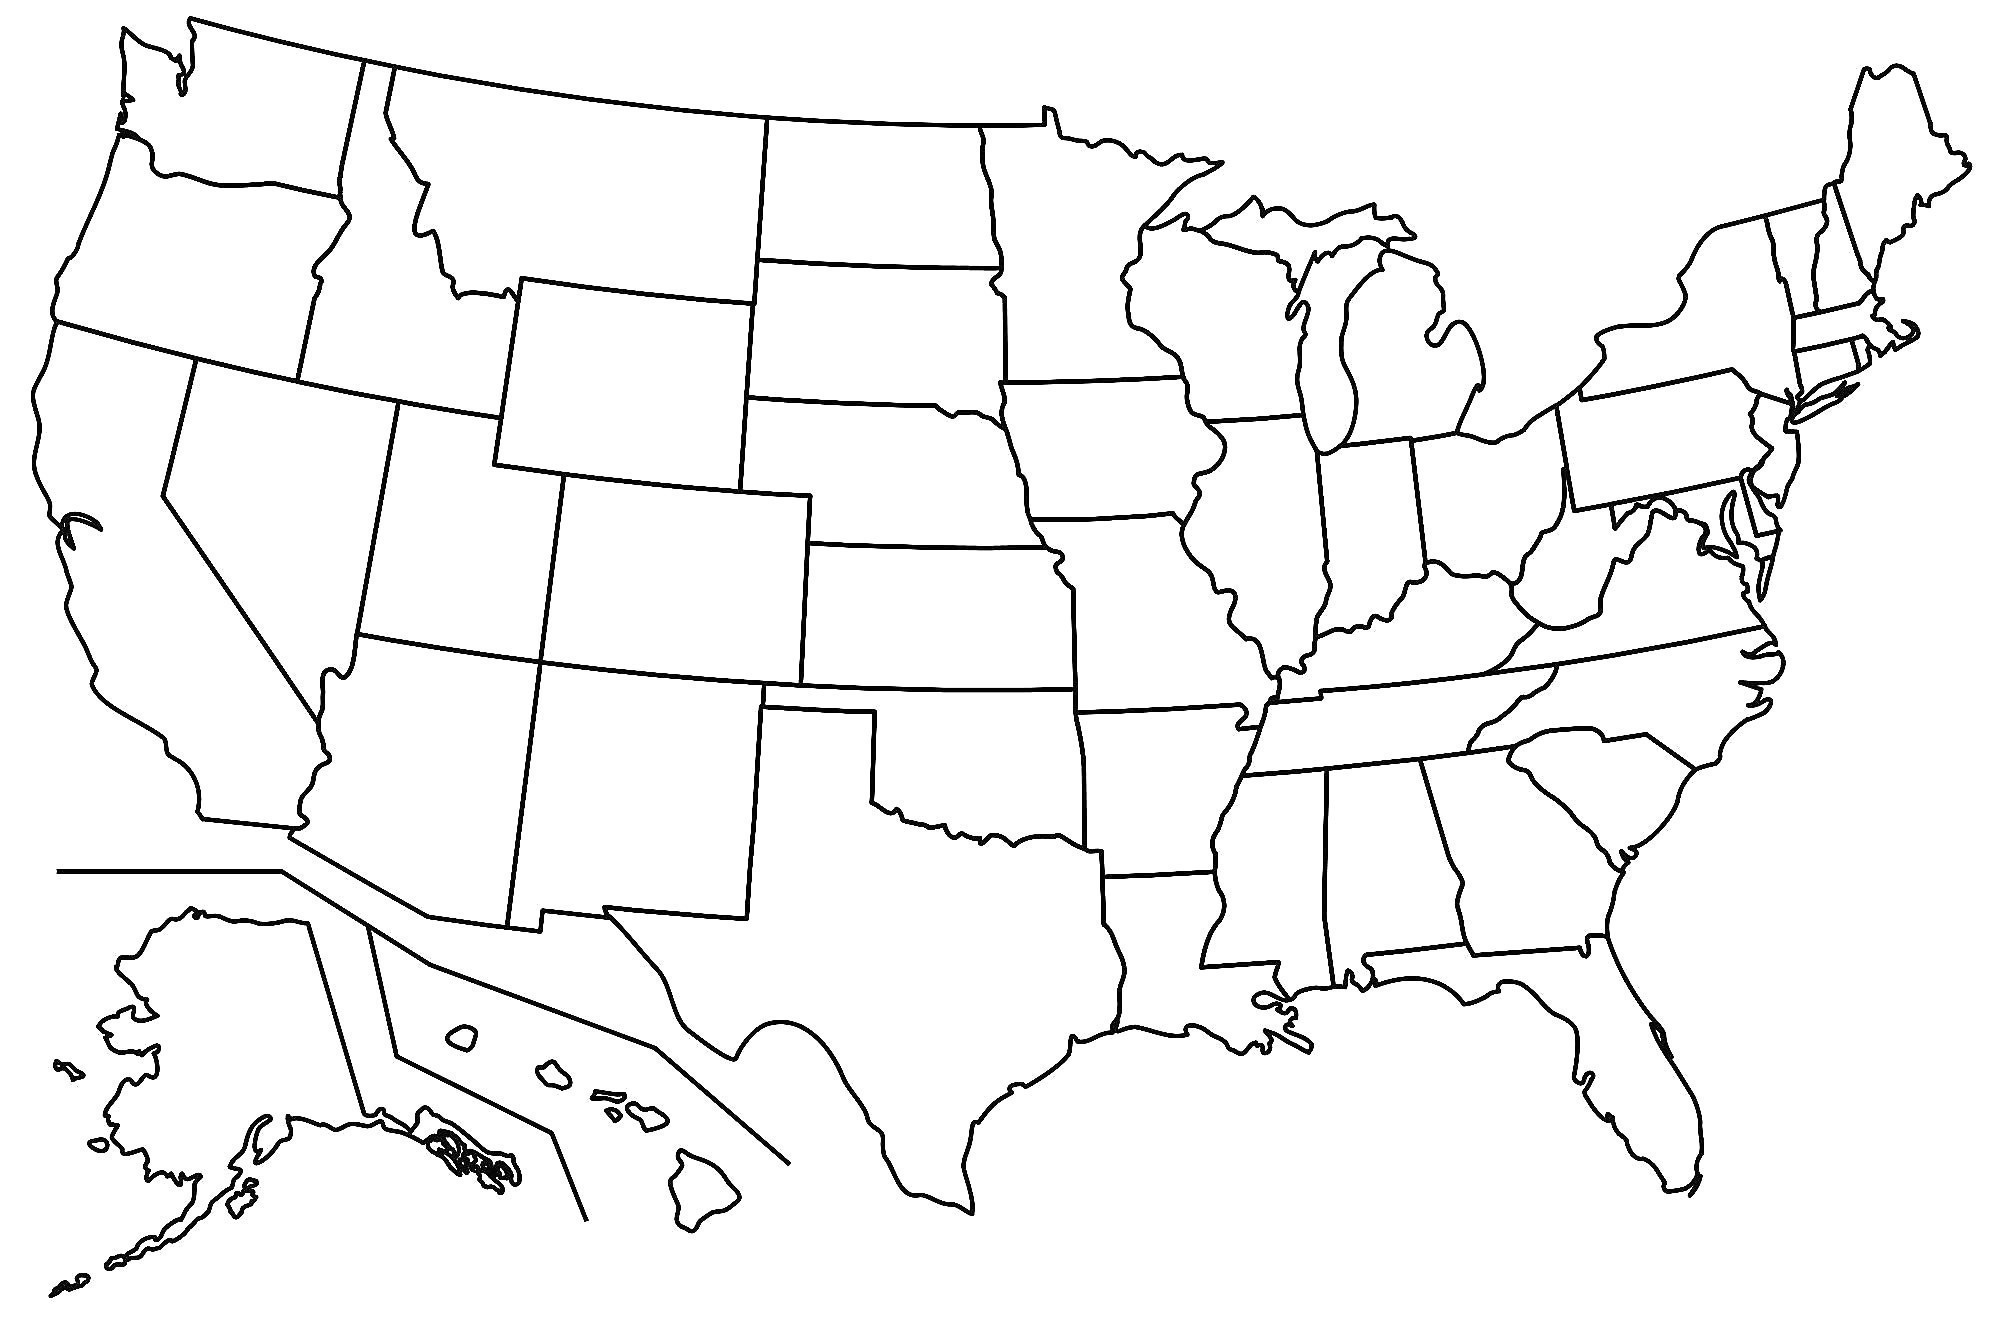 2000x1333 Vector Graphics Us Map Blank Usa Outline Map United States 259651